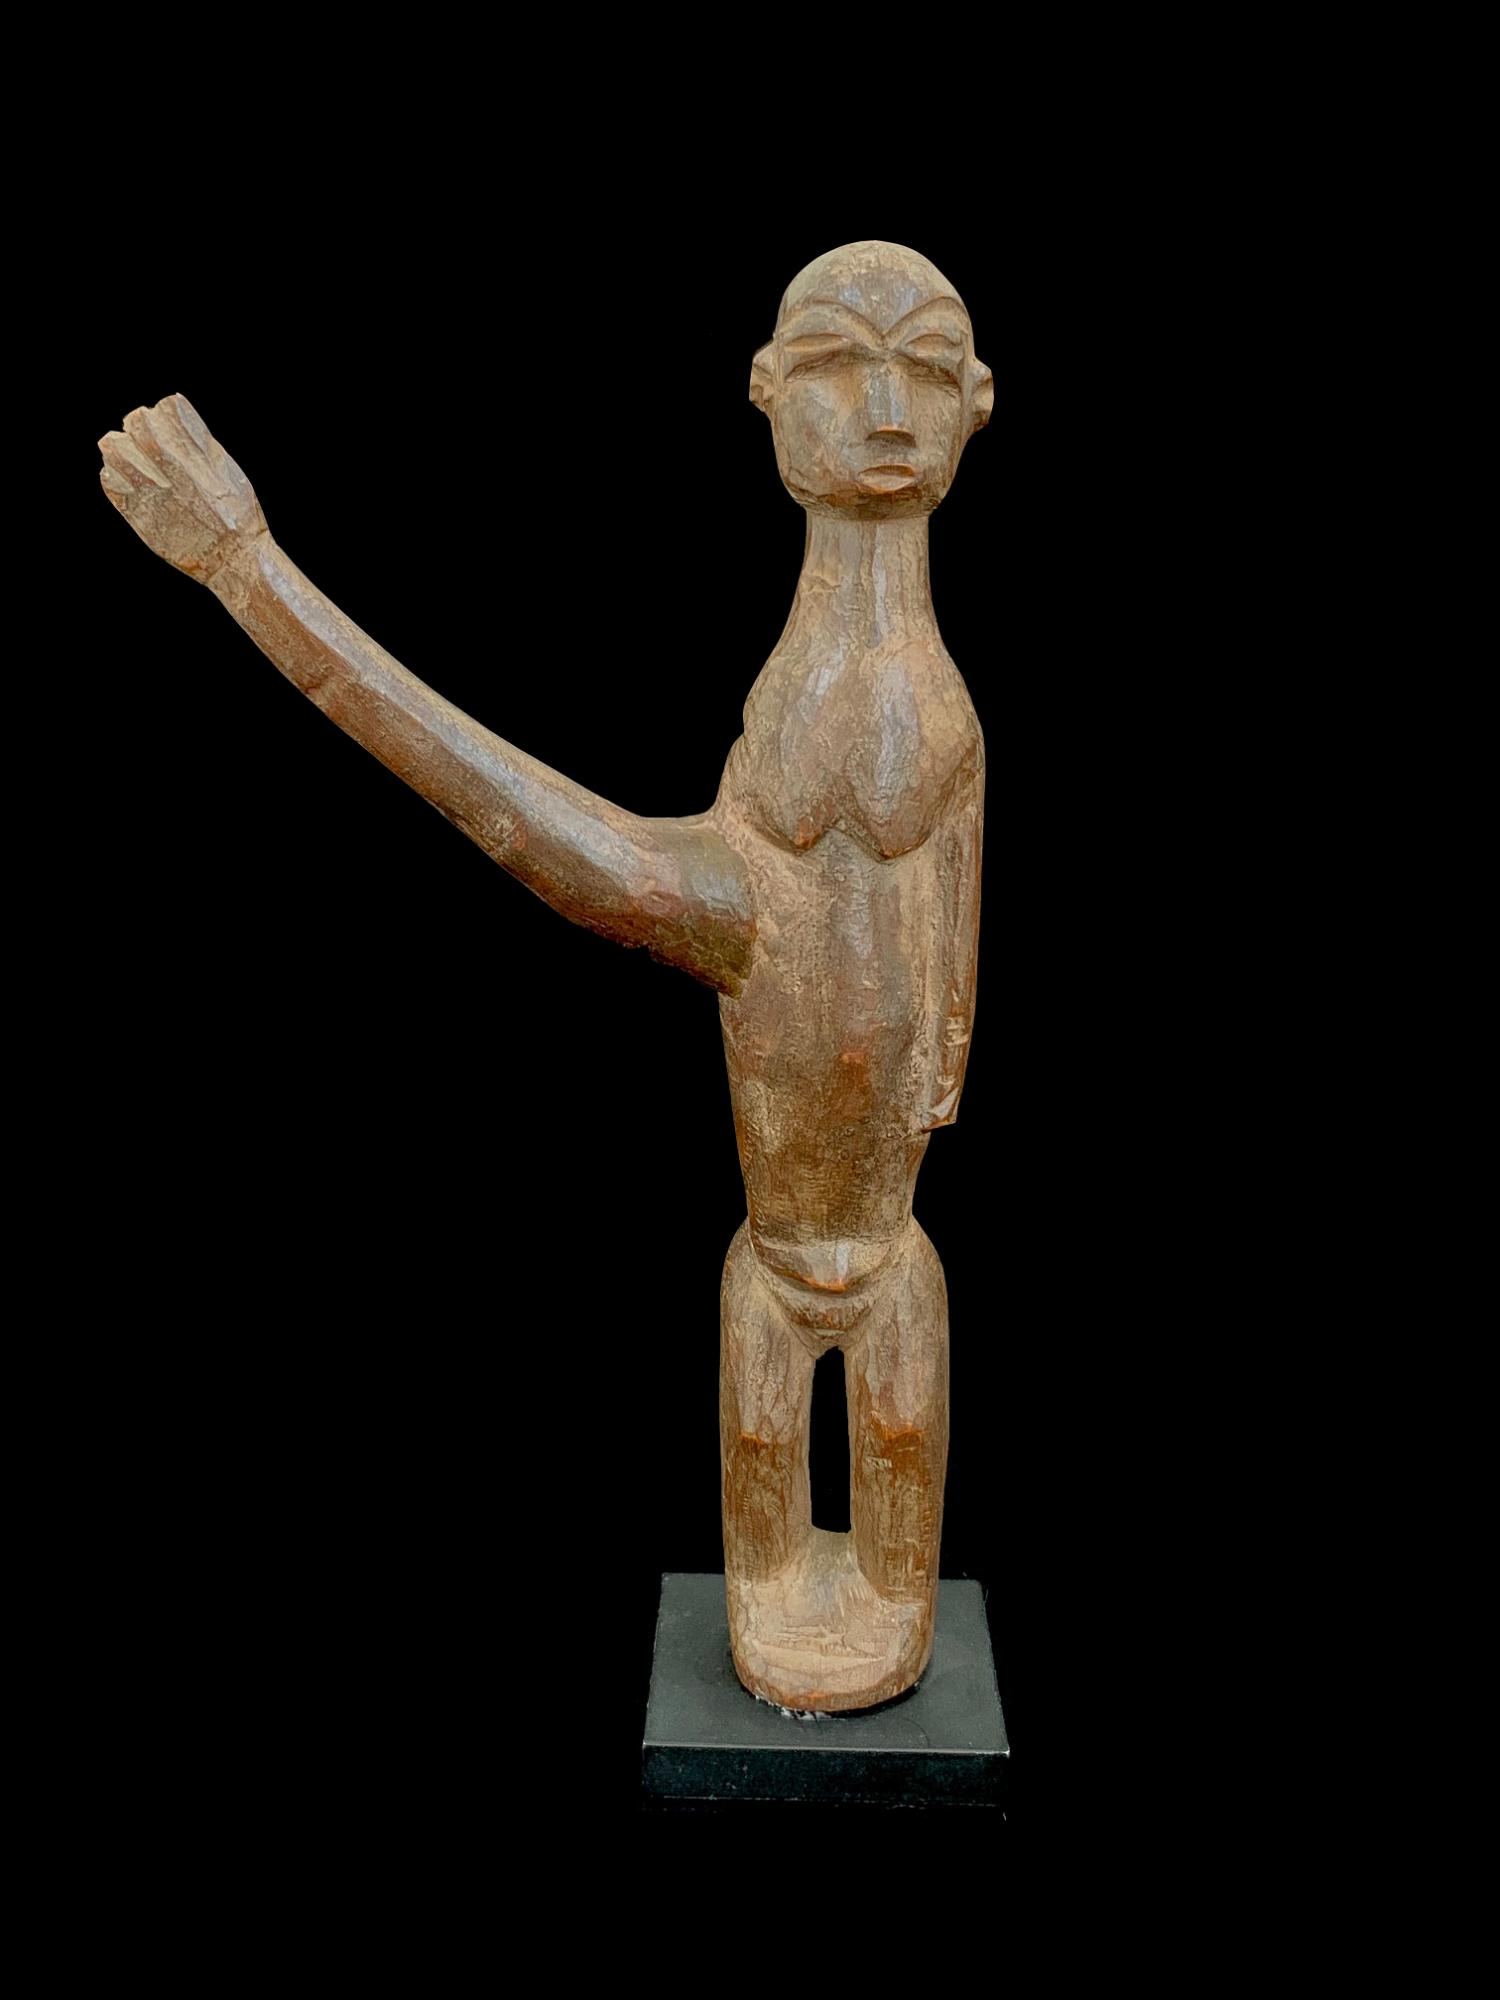 Bateba Figure with Outstretched Arm - Lobi, Burkina Faso (JL38)